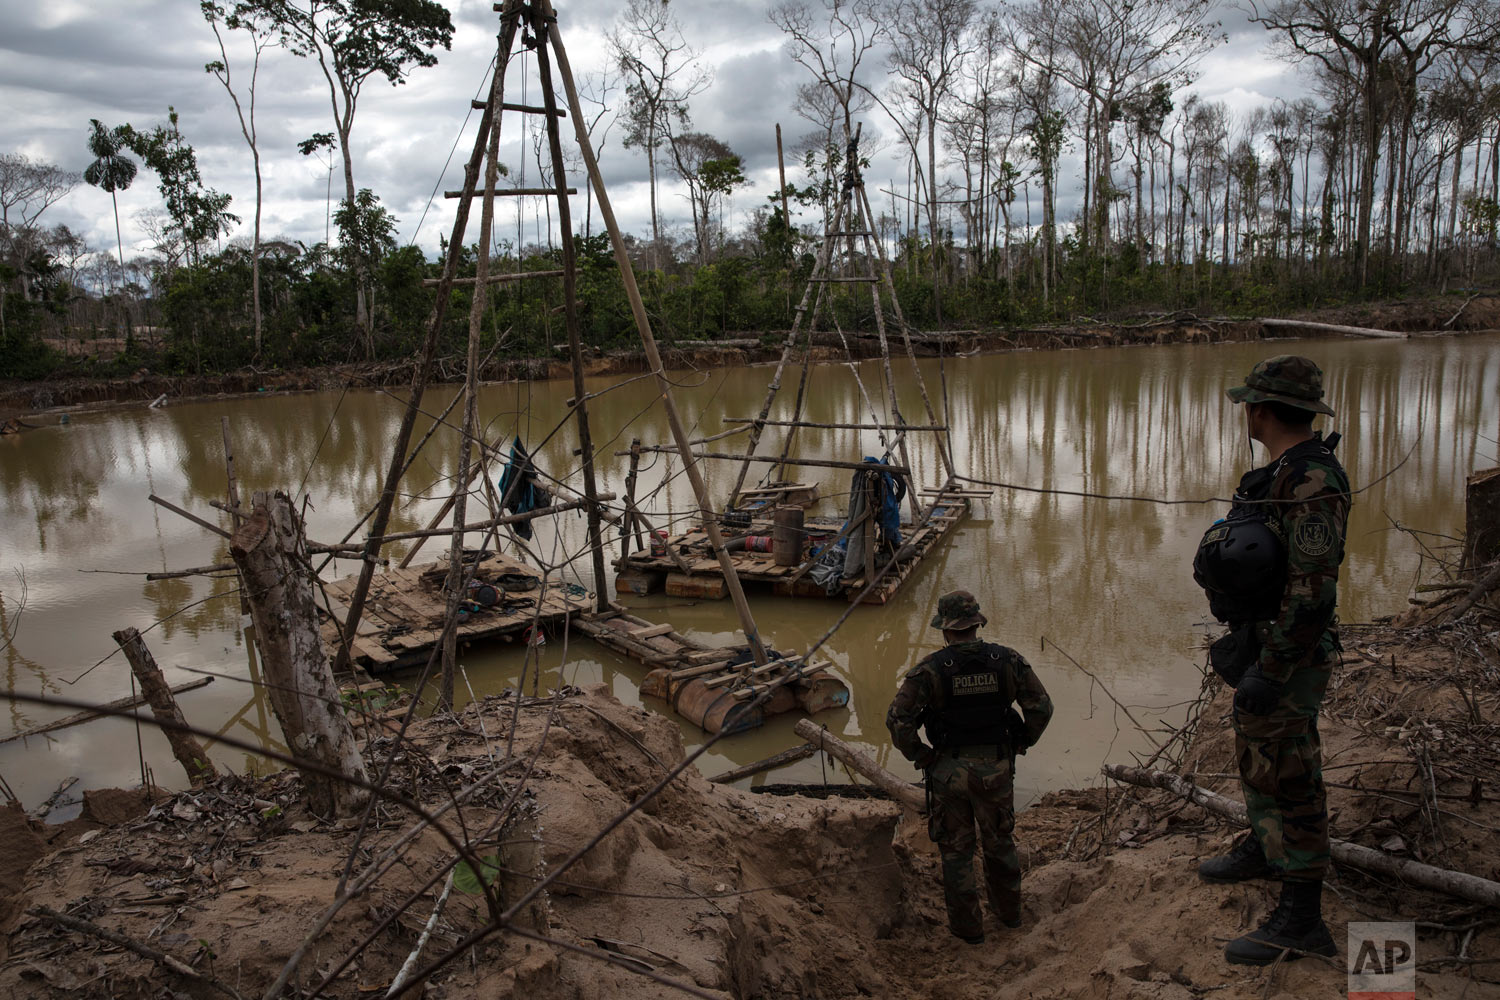 "Police special forces stand next to illegal mining machinery, April 1, 2019, in Peru's Tambopata province. As part of ""Operation Mercury"", Peruvian police and soldiers search for and destroy equipment used by illegal gold miners in a part of the Amazon rainforest where the mining transformed dense foliage into a desert pocked with dead trees and toxic pools. (AP Photo/Rodrigo Abd)"